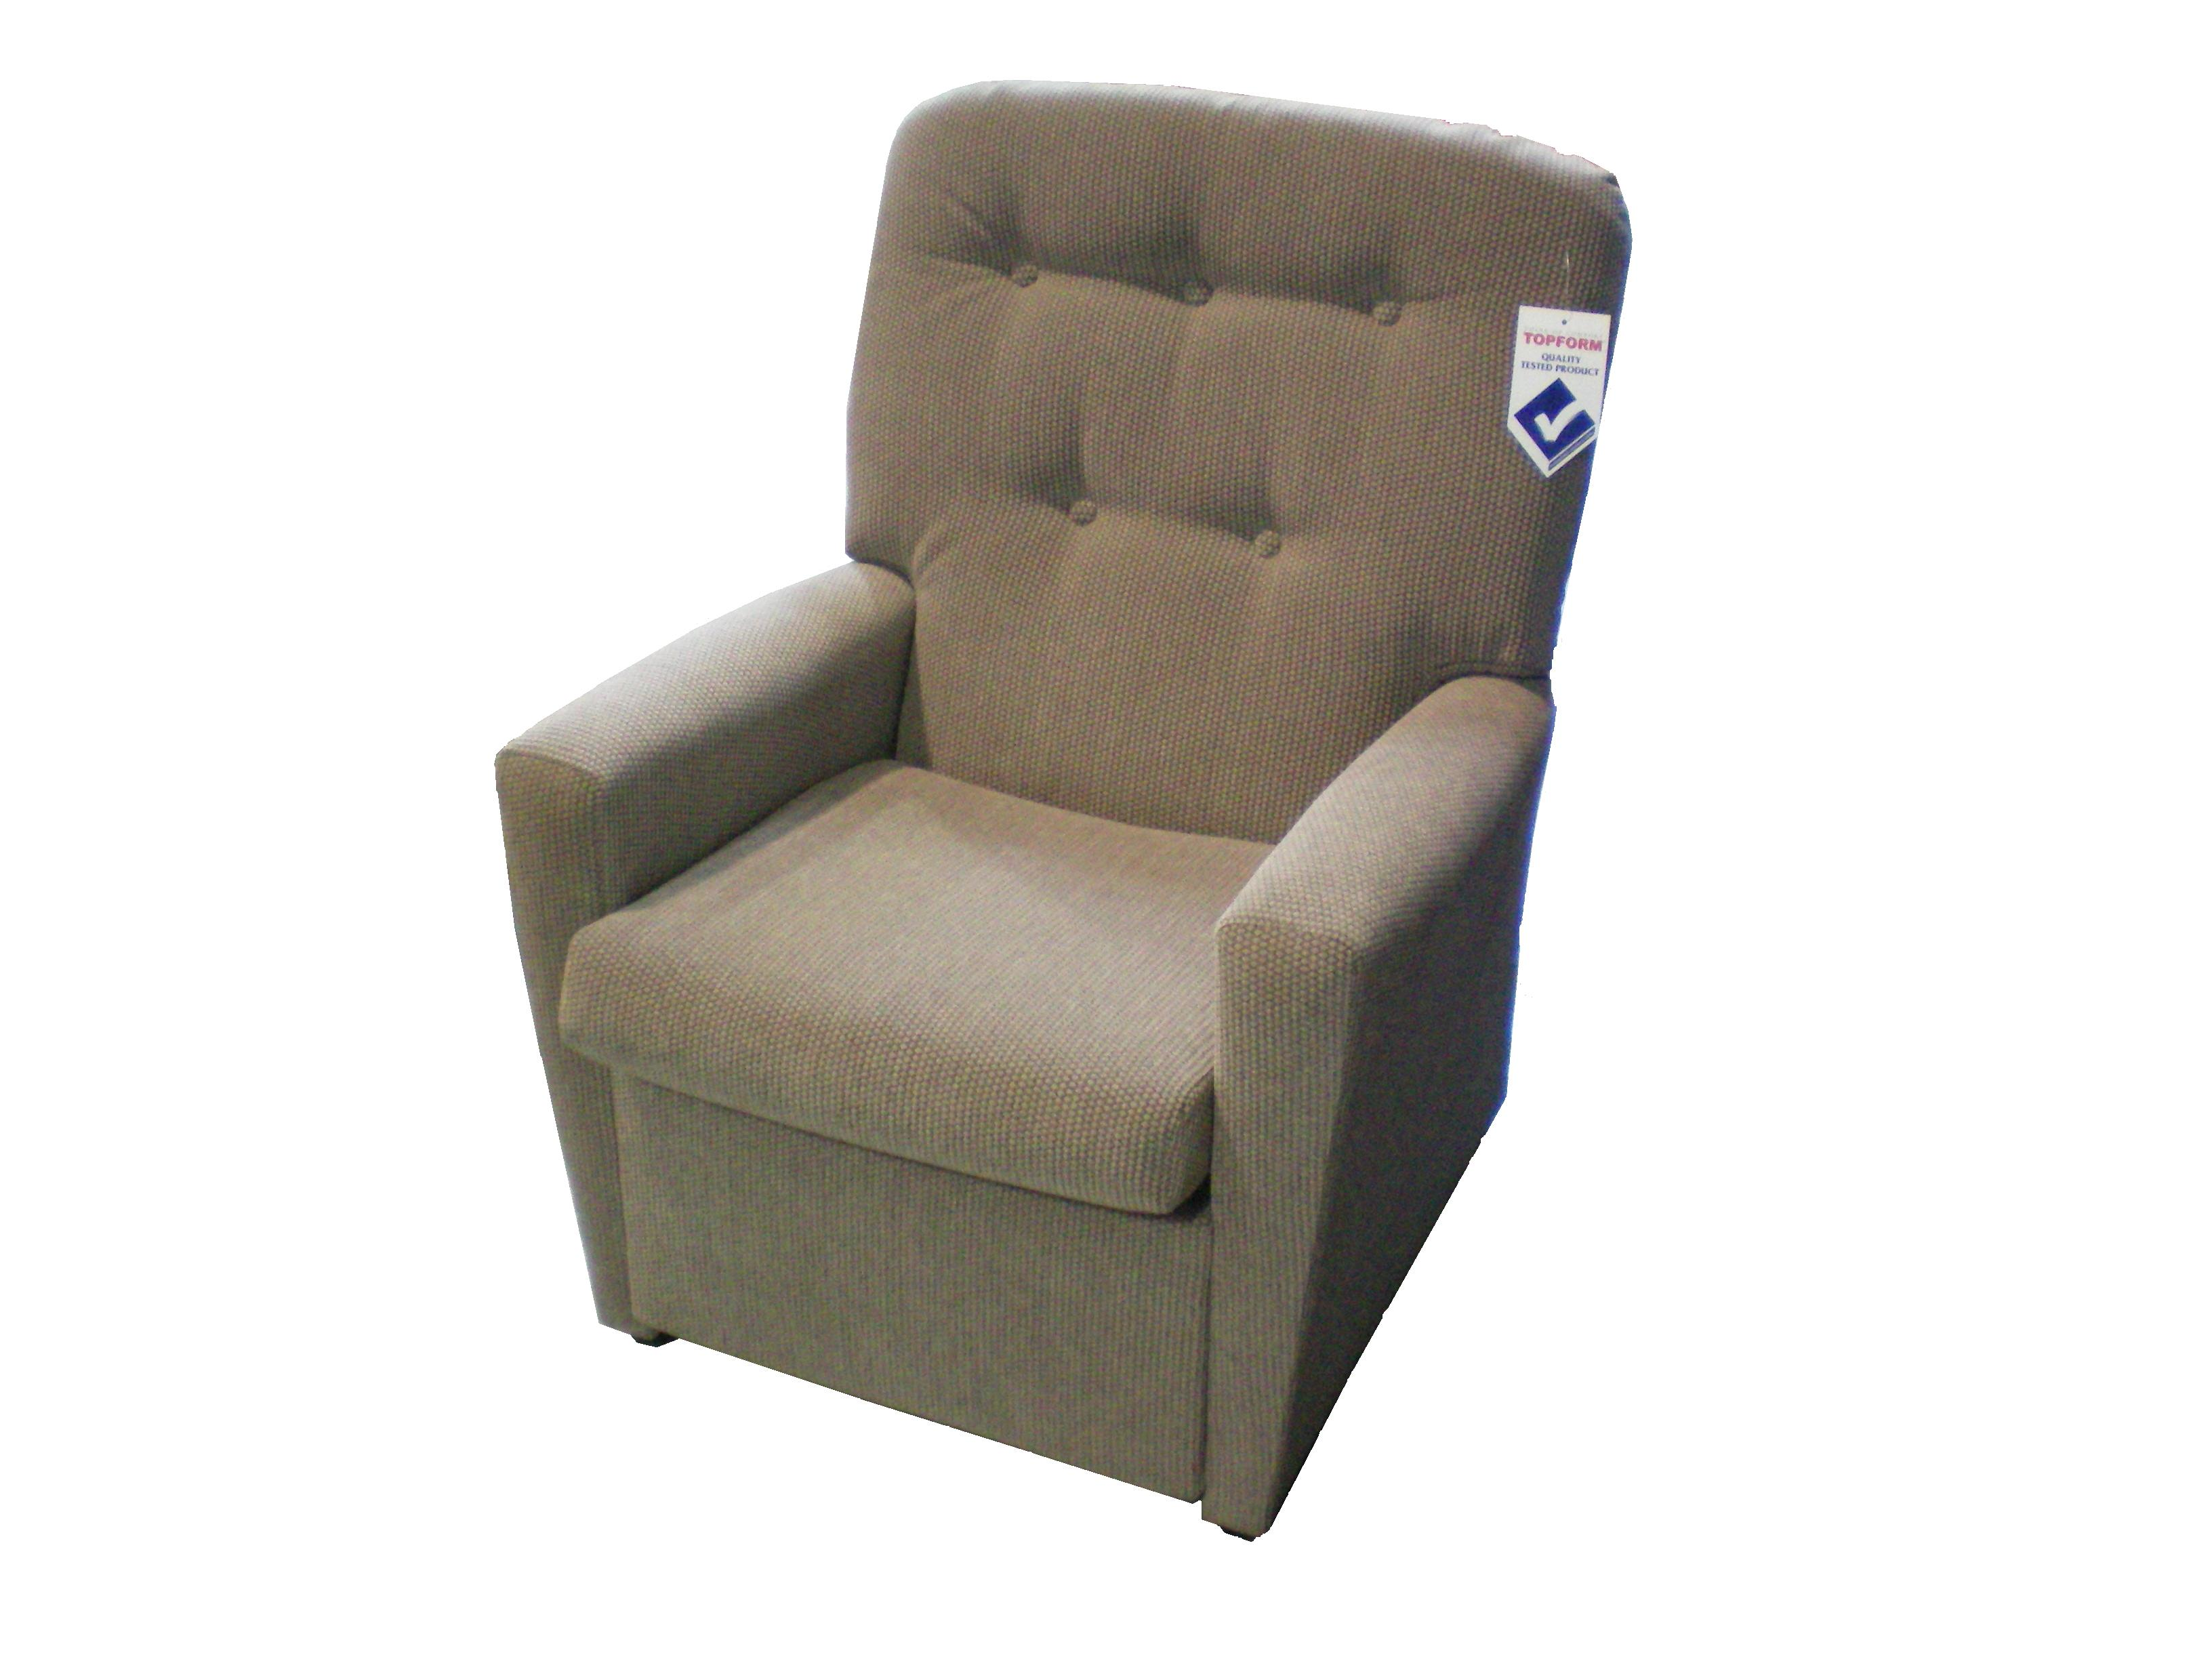 chairs item motion southern products power showcase headrest showcasepower trim width lift threshold chair recliner height